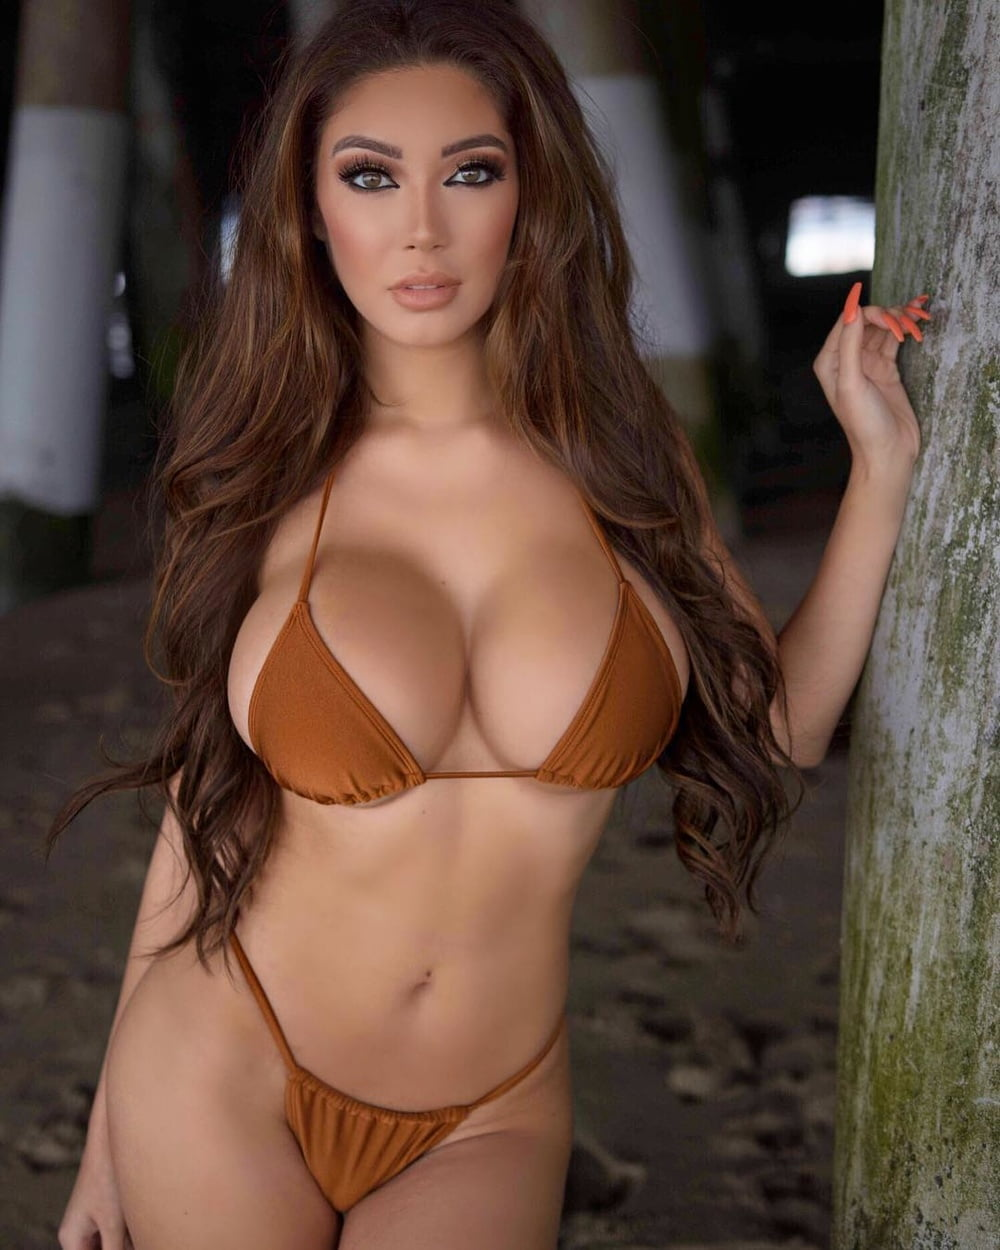 escape-from-busty-babe-land-christmas-sexy-babes